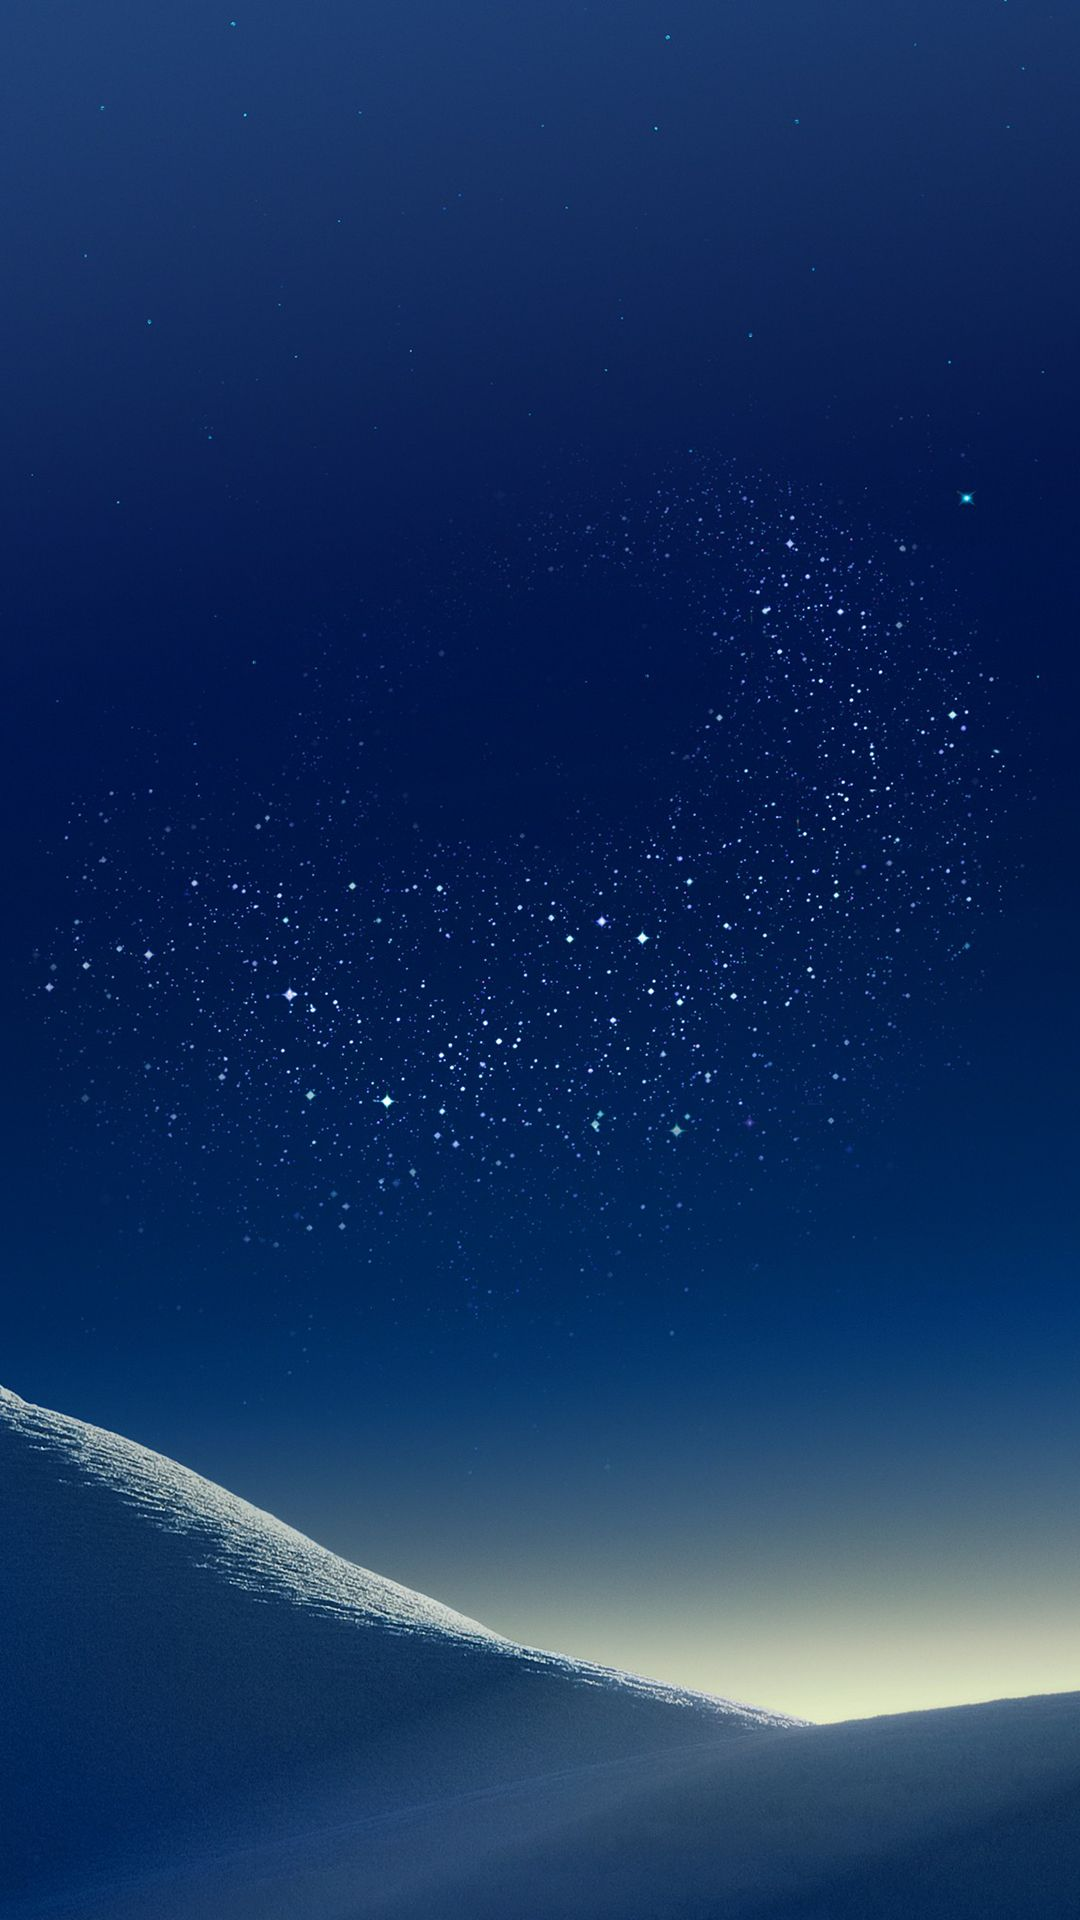 Mountain Wallpaper Galaxy Tranquil Beauty Nature Peaceful Calming Night Blue Stars Digital Art Samsung